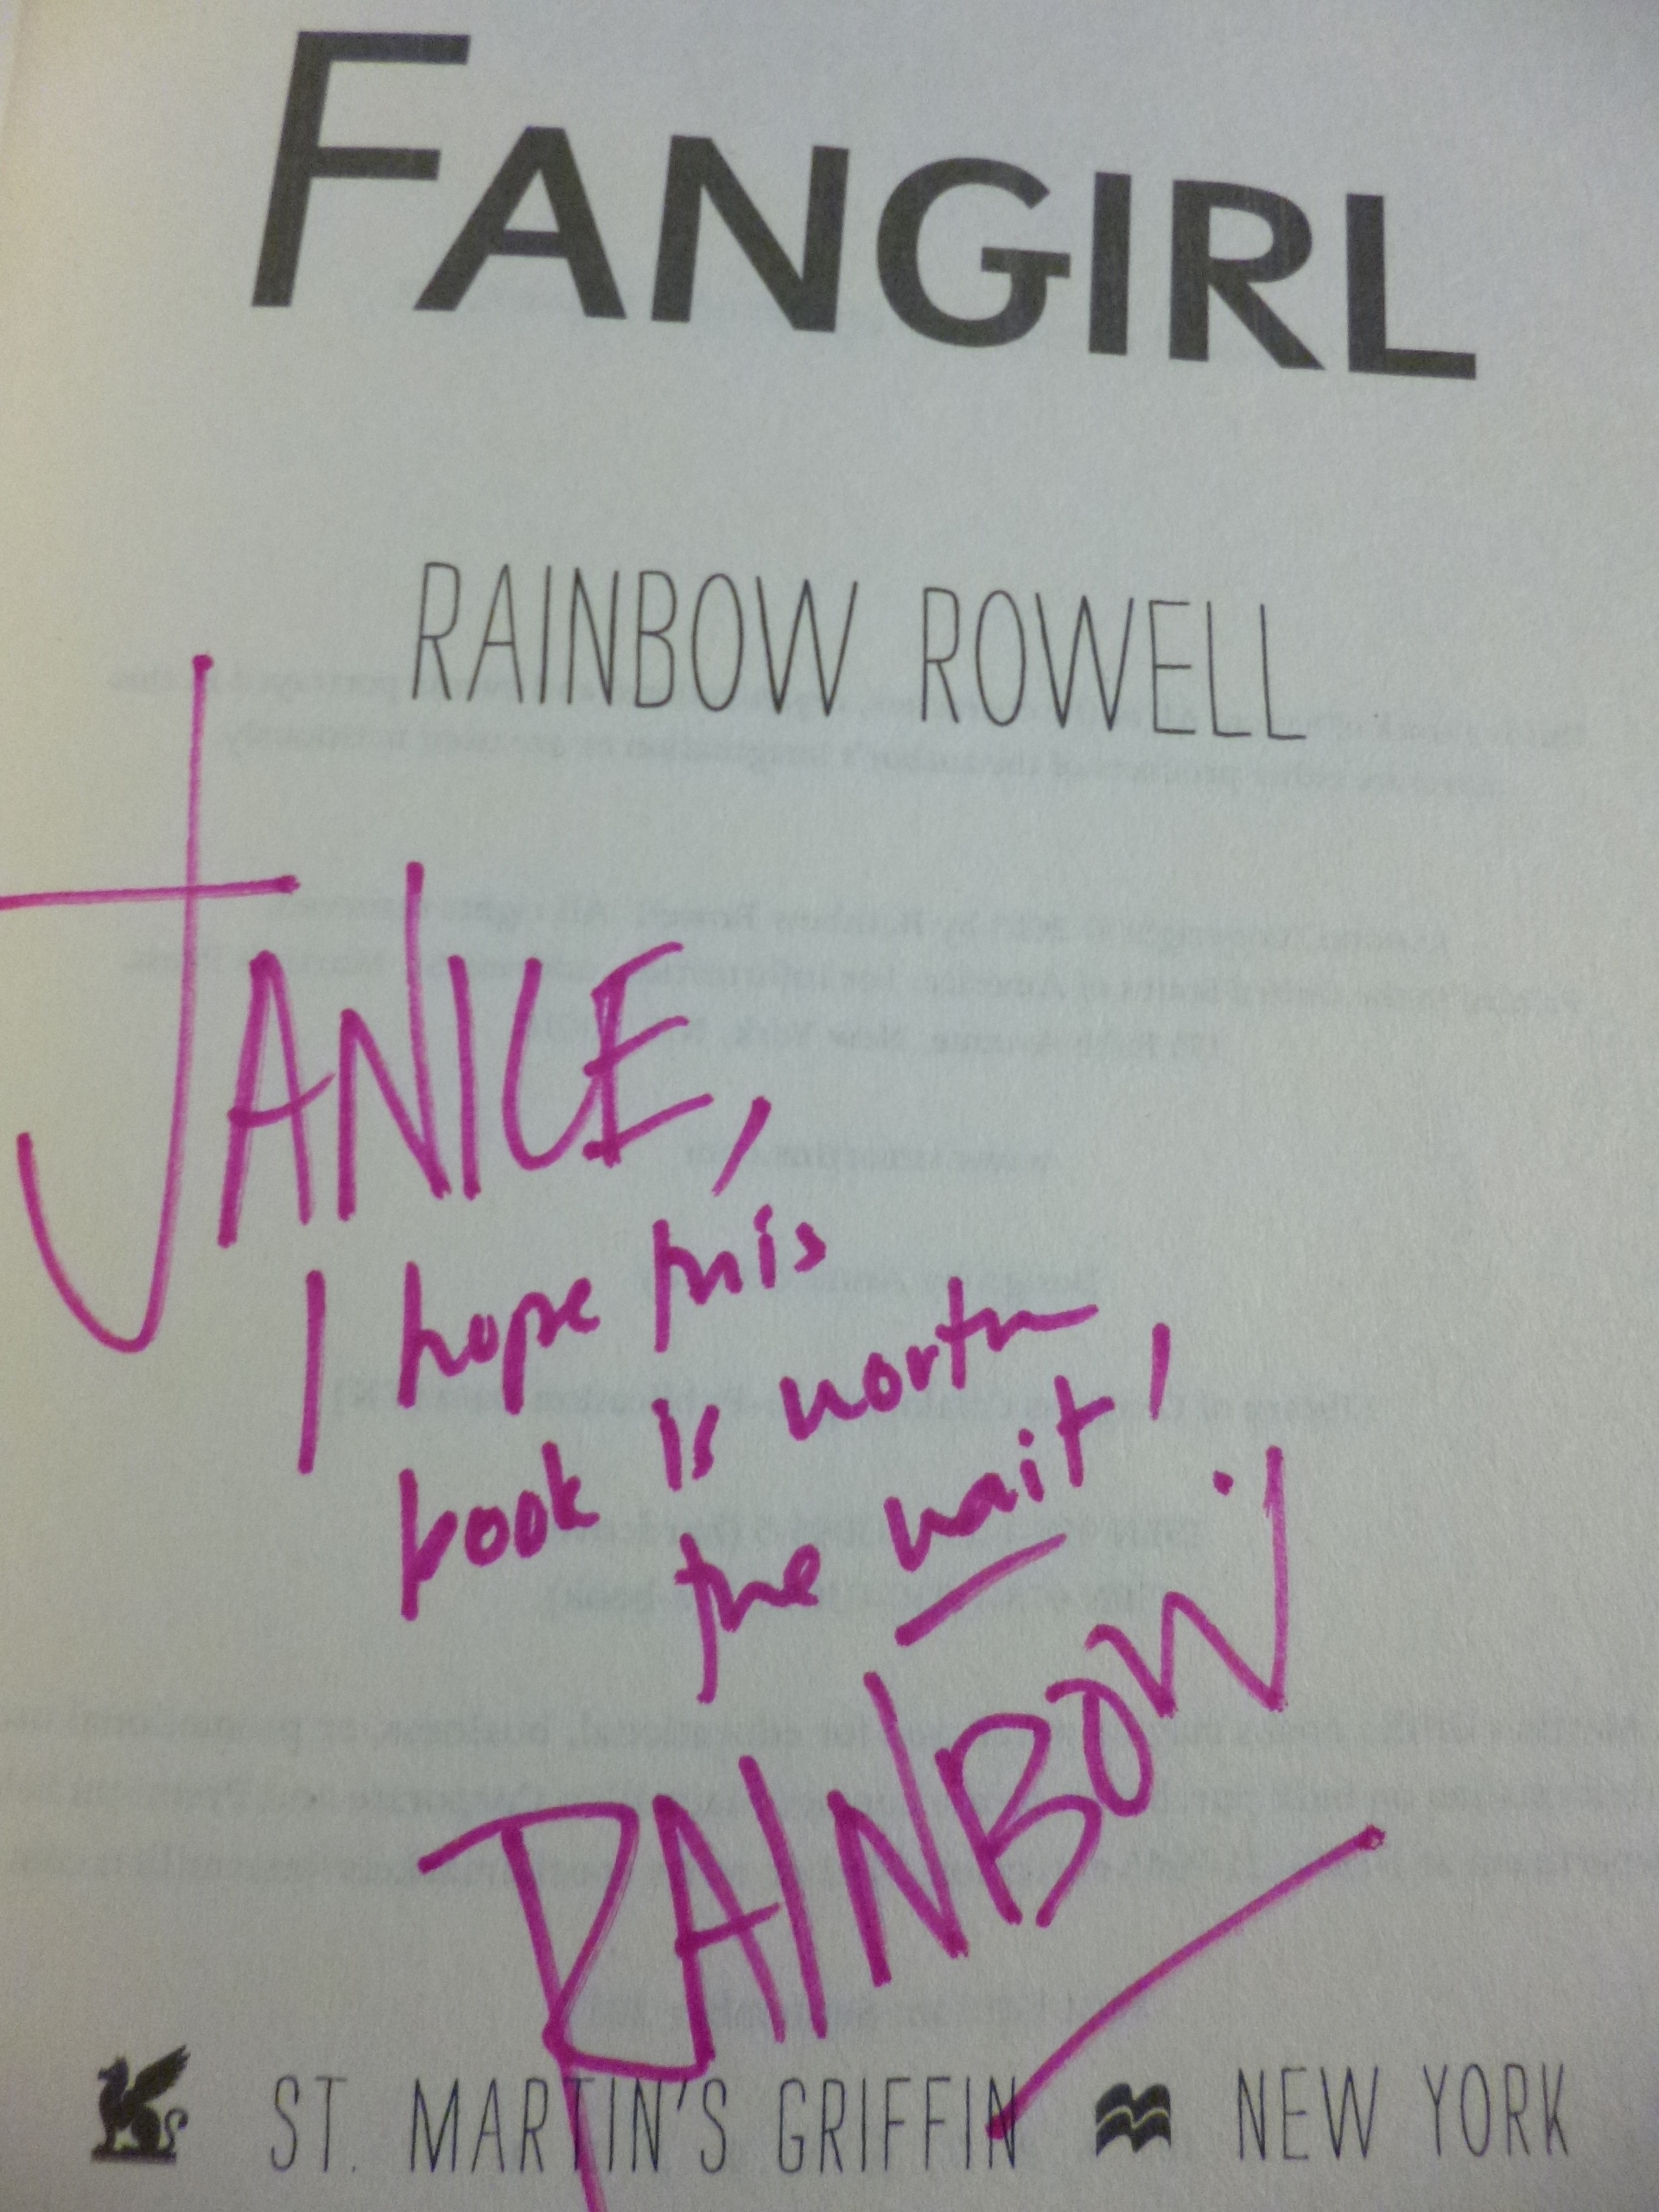 fangirl by rainbow rowell specficromantic